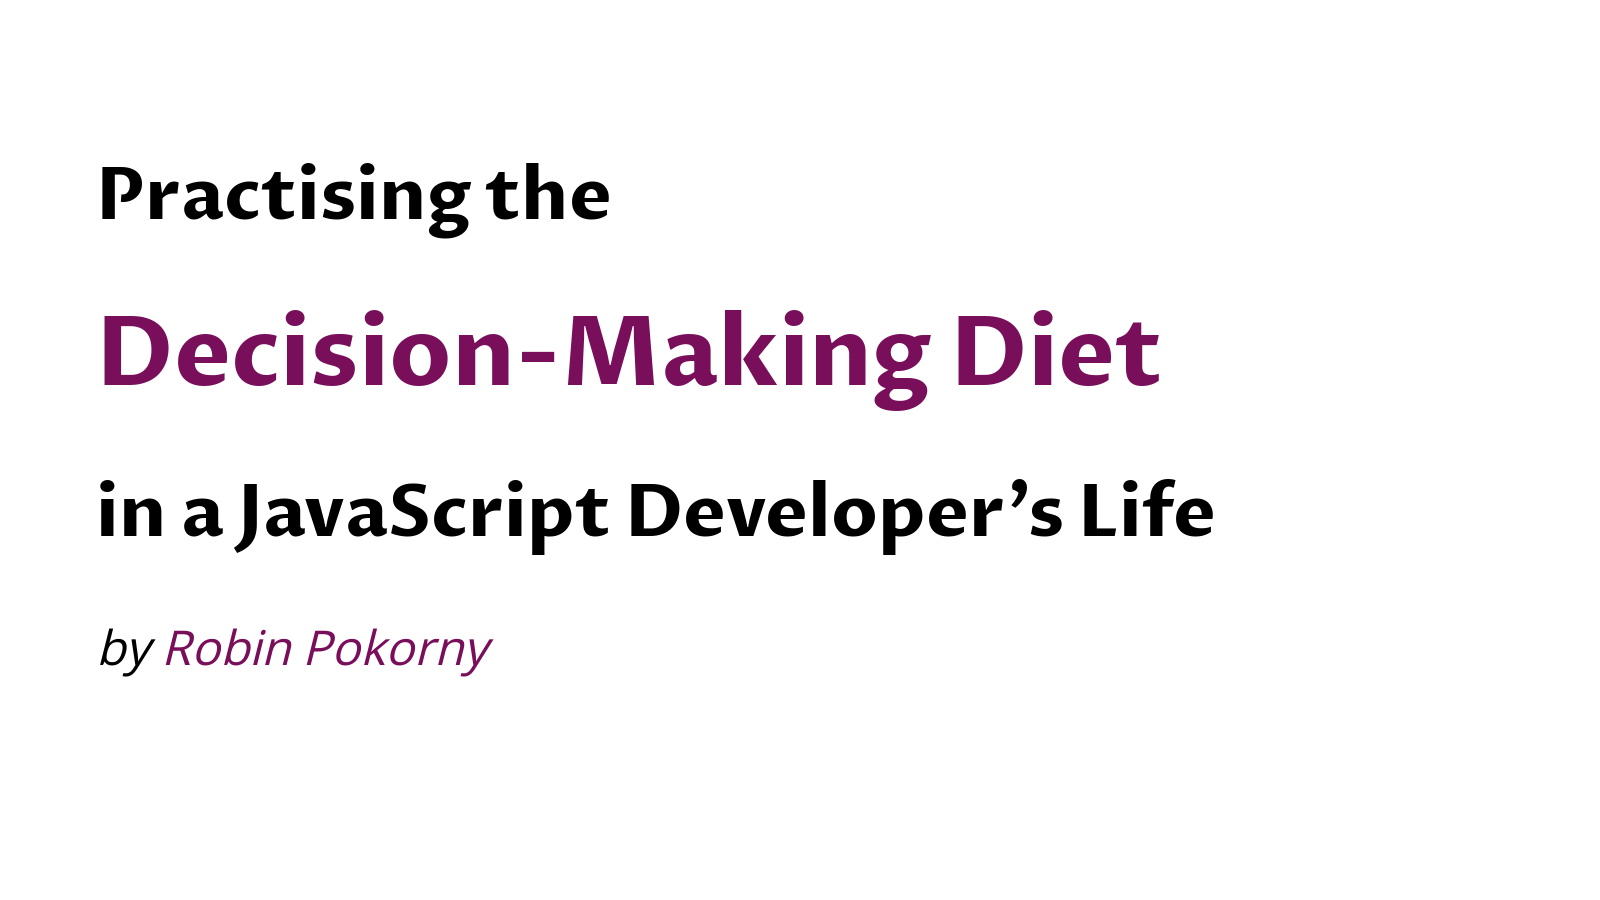 Practising the Decision-Making Diet in a JavaScript Developer's Life